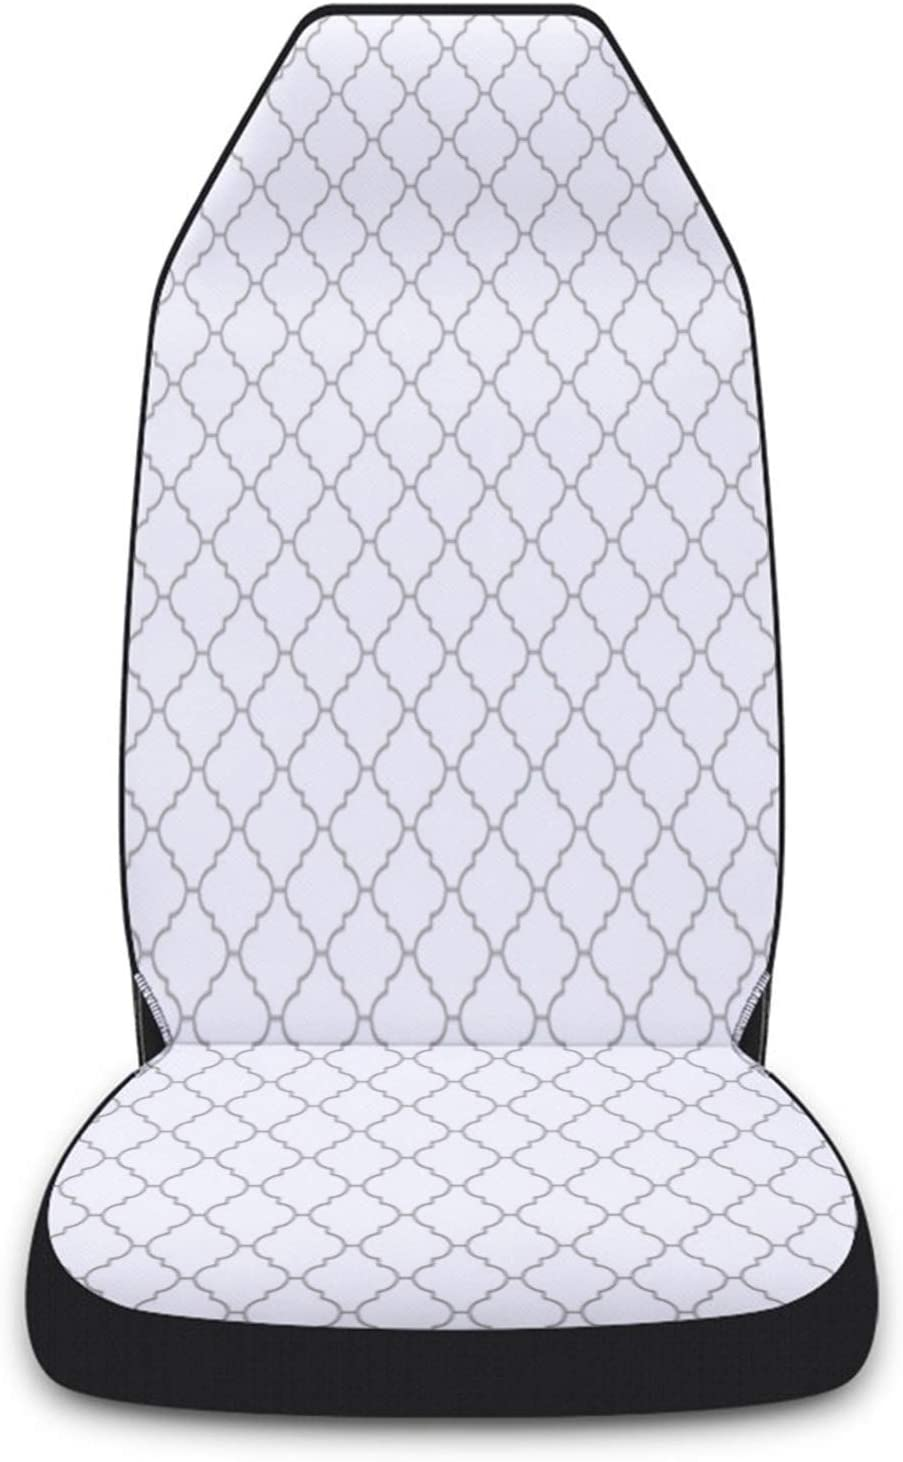 Product Cloud Dream Home Car Seat Front Max 86% OFF Covers Patterned Geometric